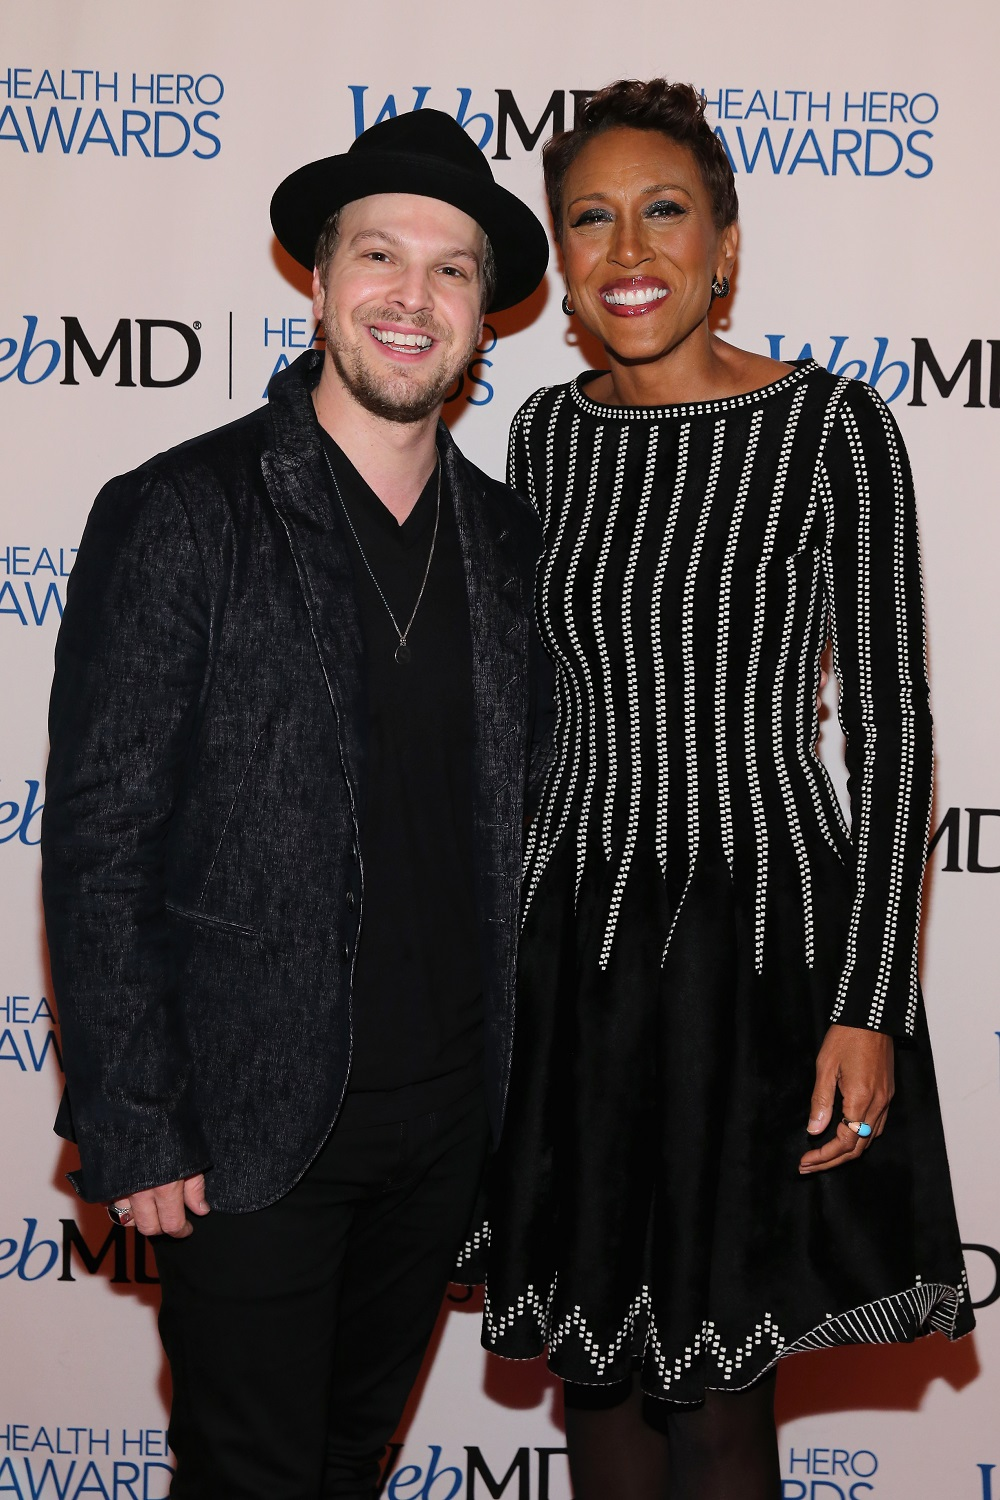 NEW YORK, NY - NOVEMBER 06: Musician Gavin DeGraw (L) and Anchor of Good Morning America Robin Roberts attend the 2014 Health Hero Awards hosted by WebMD at Times Center on November 6, 2014 in New York City.  (Photo by Neilson Barnard/Getty Images for WebMD)